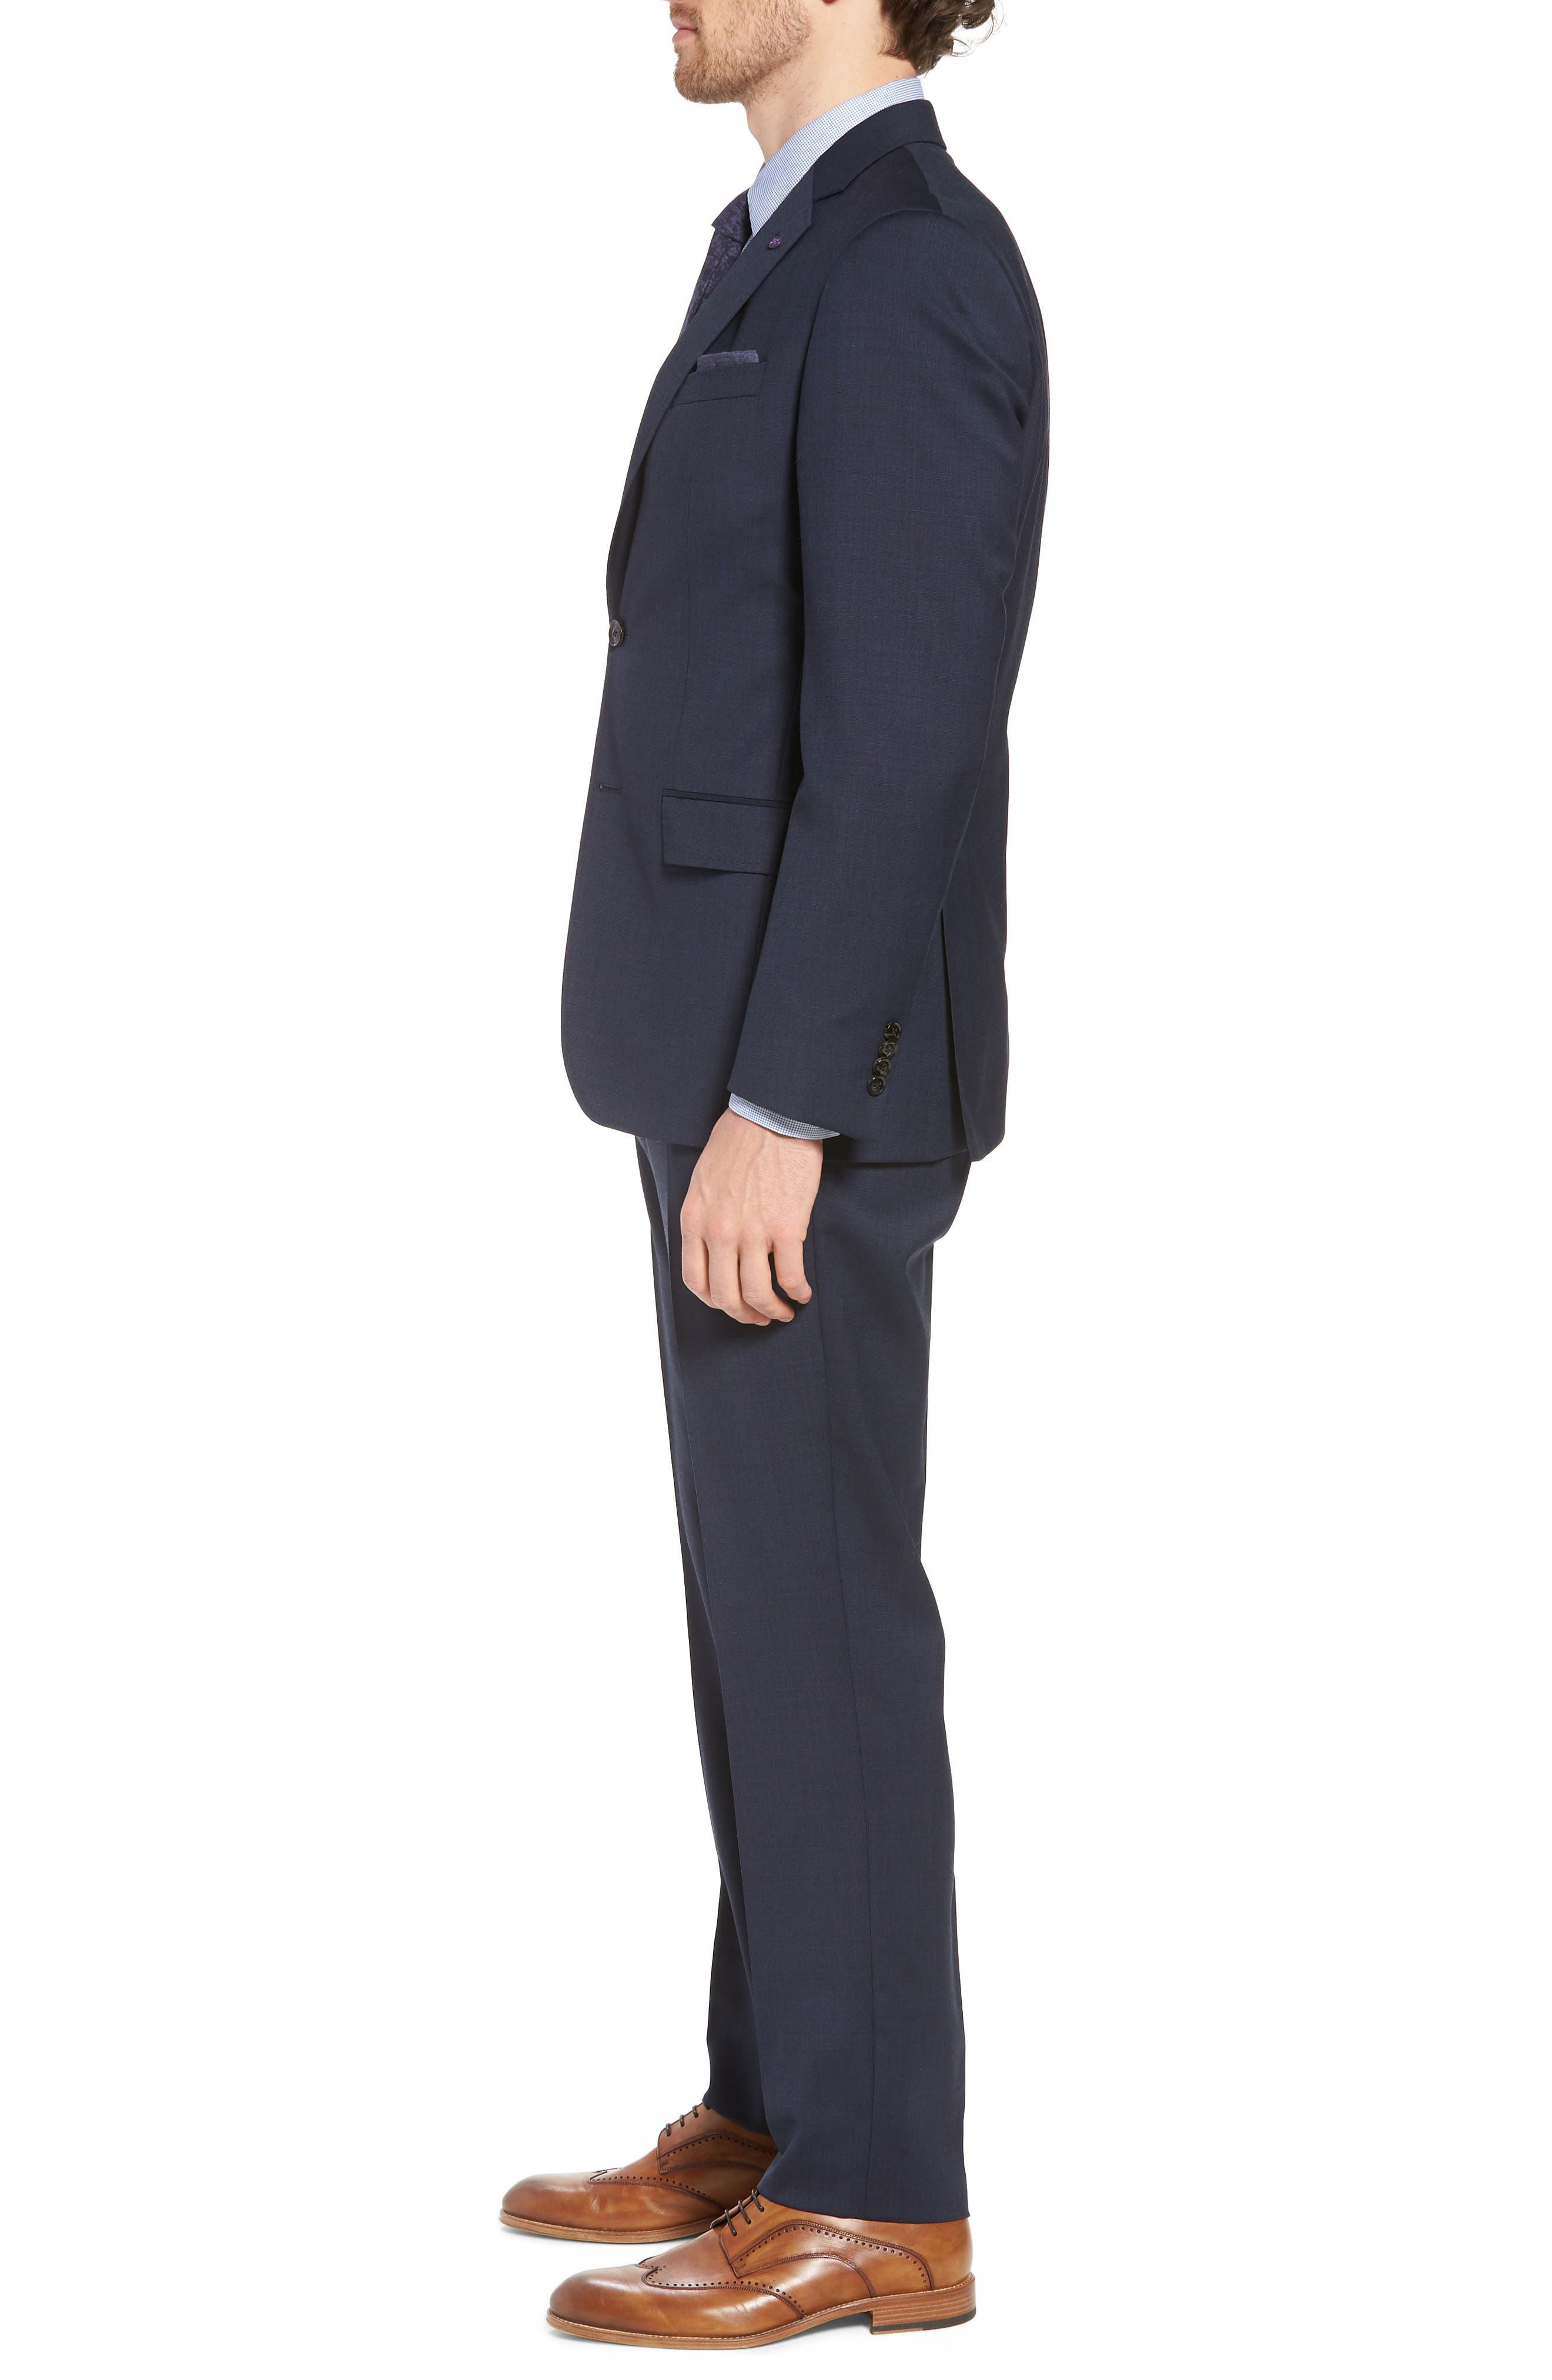 Jay Trim Fit Solid Wool Suit,                             Alternate thumbnail 3, color,                             Navy